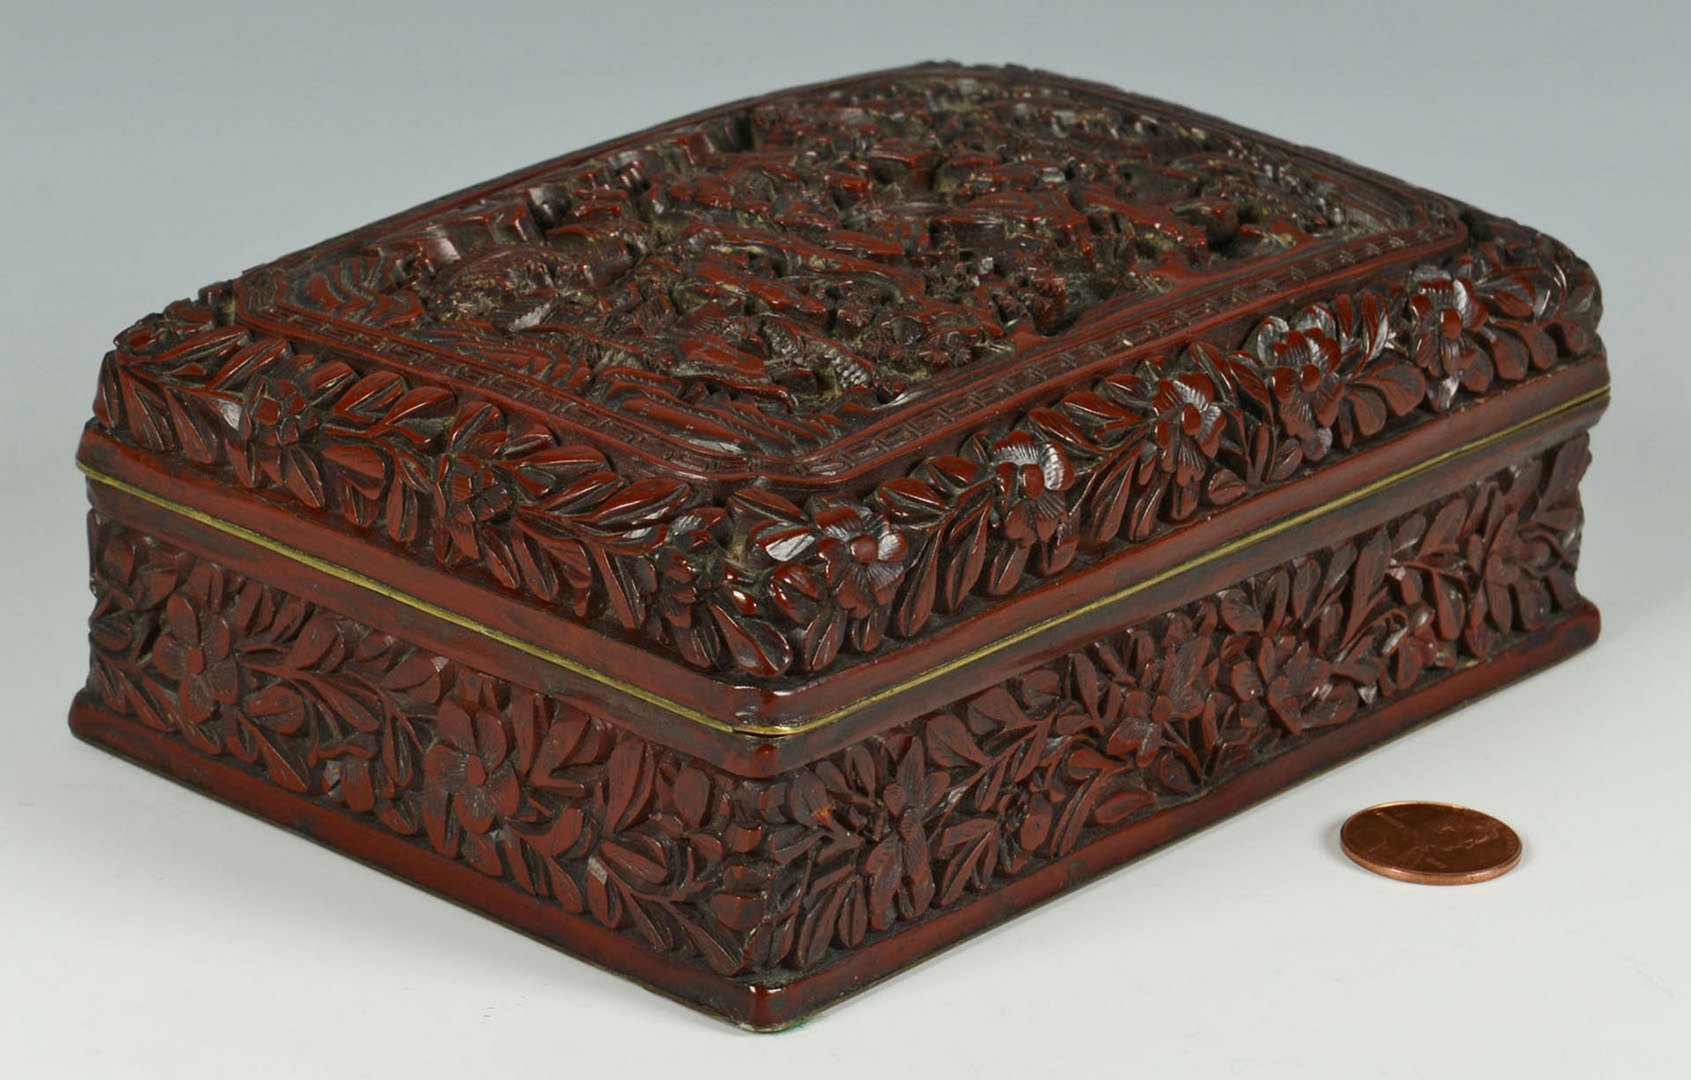 Lot 4: 19th century Carved Chinese Cinnabar Box